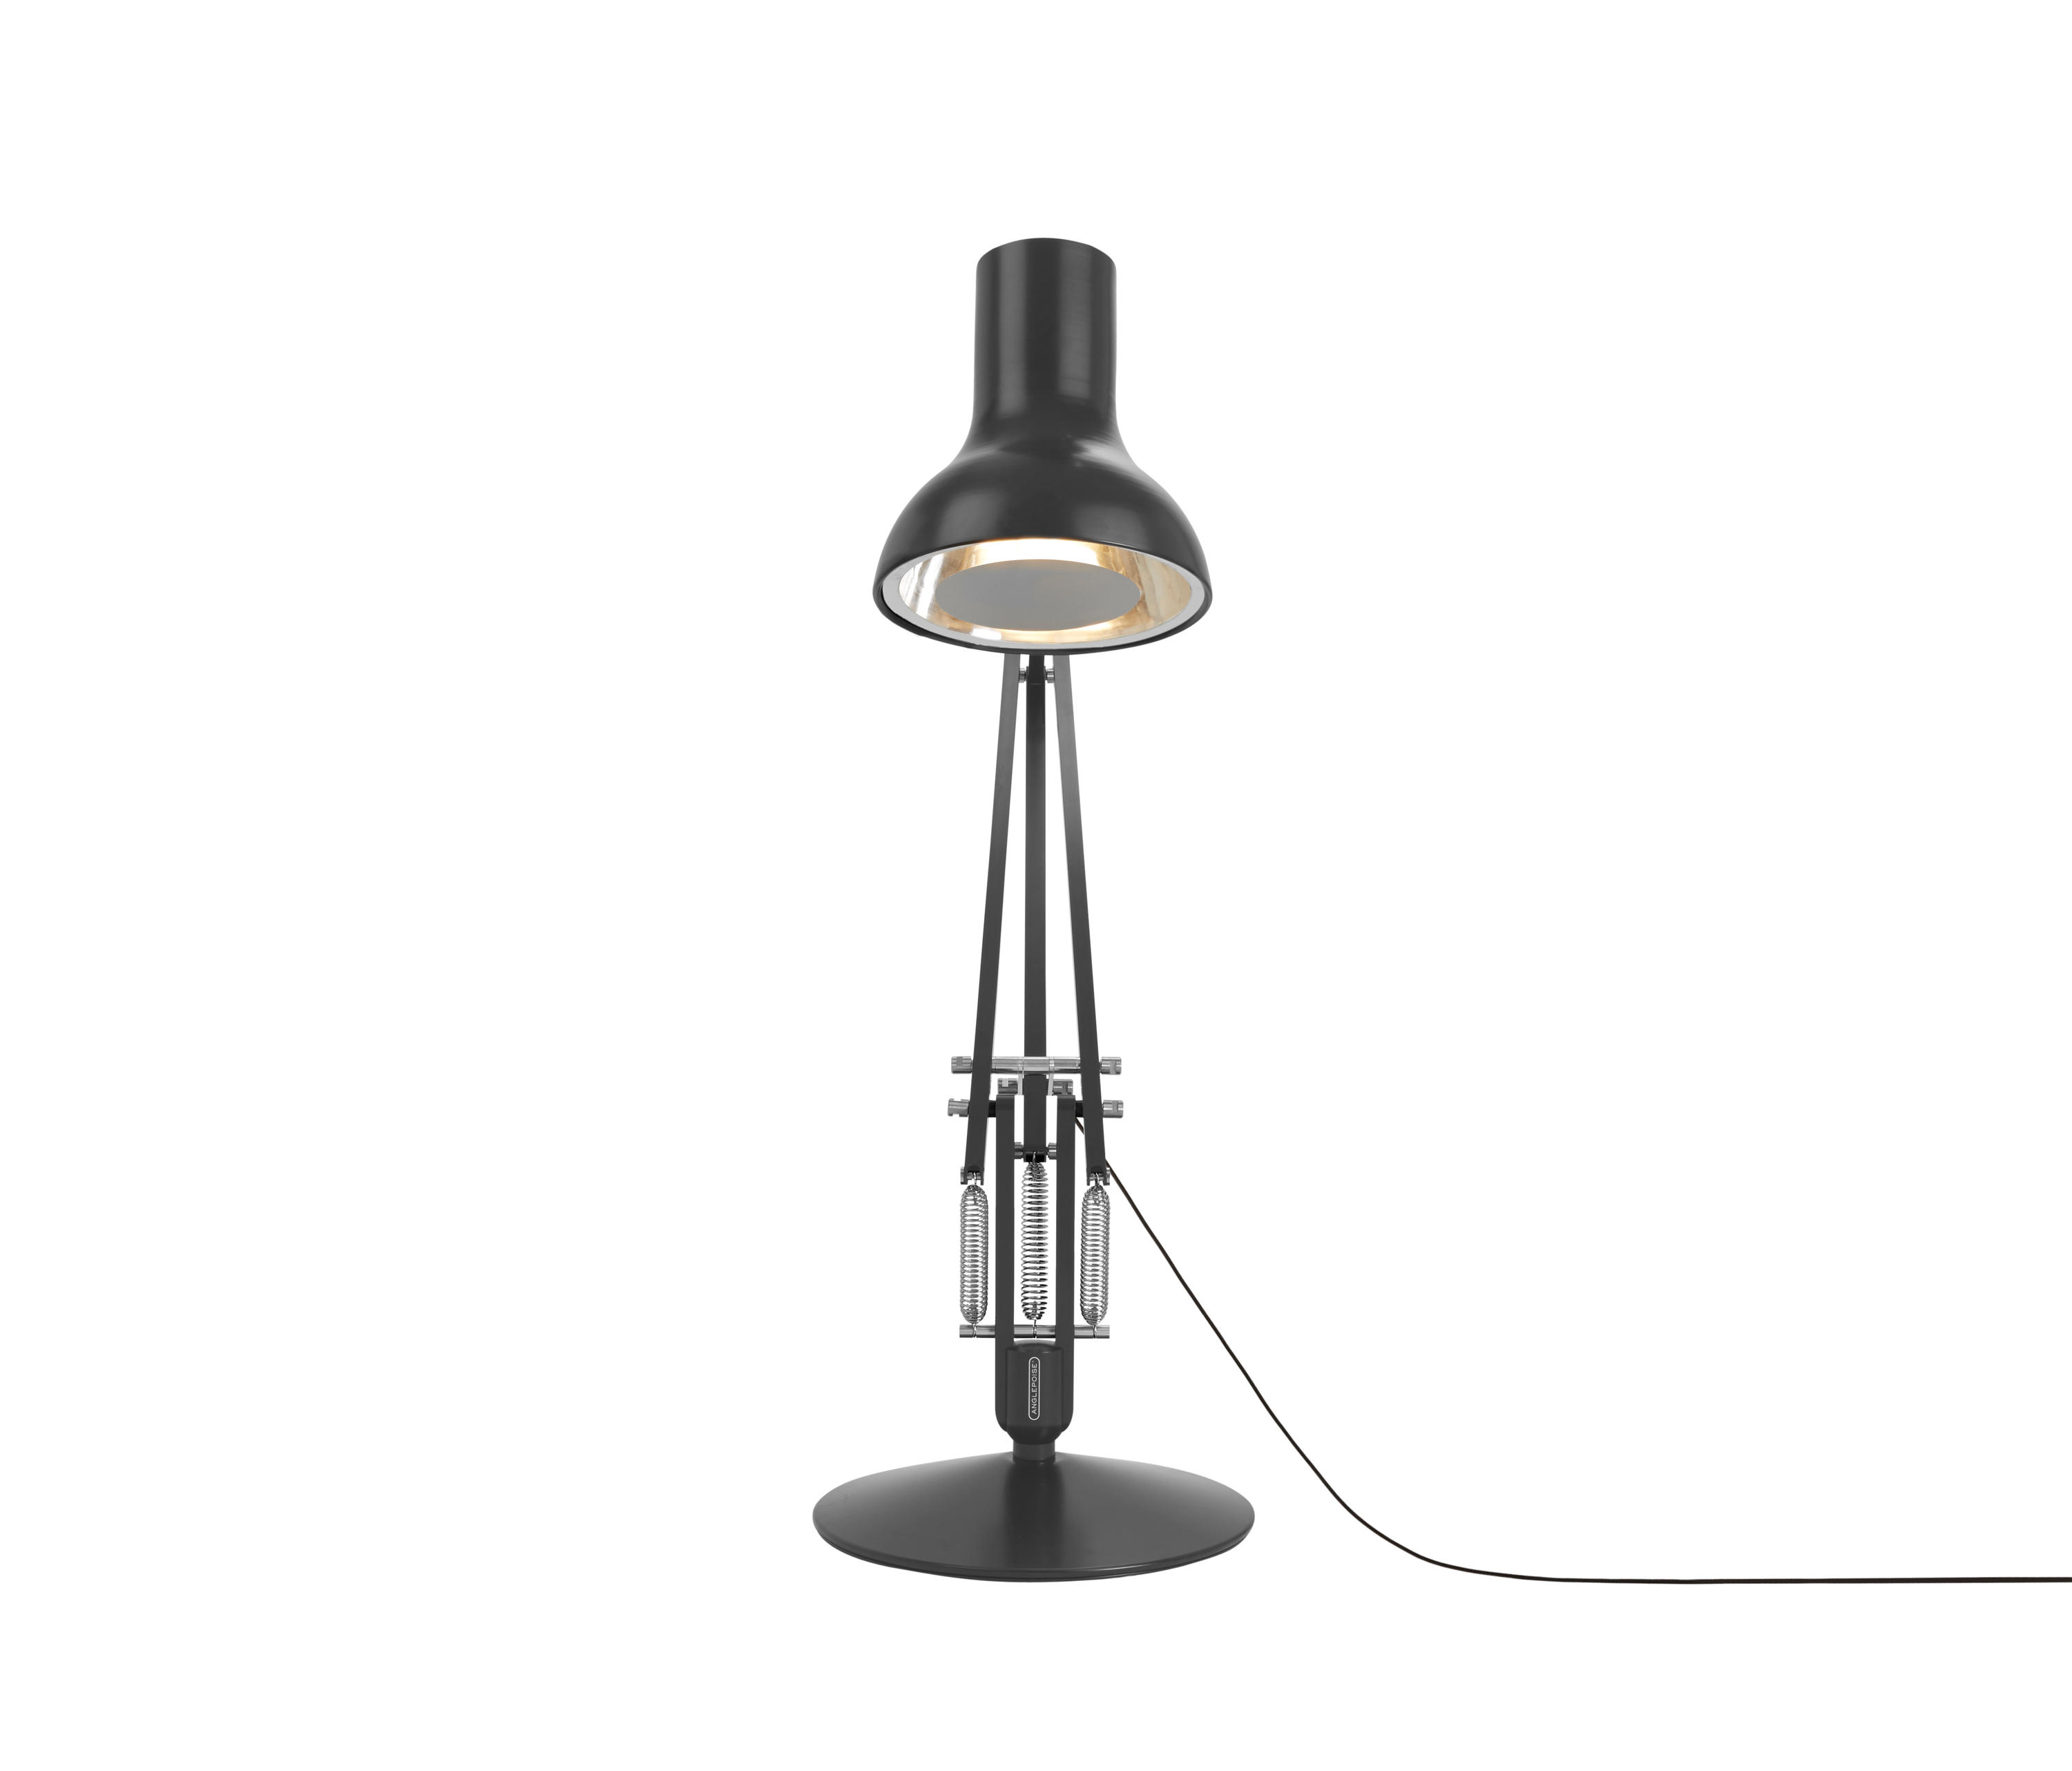 Type 75 giant floor lamp general lighting by anglepoise architonic - Giant anglepoise lamp ...